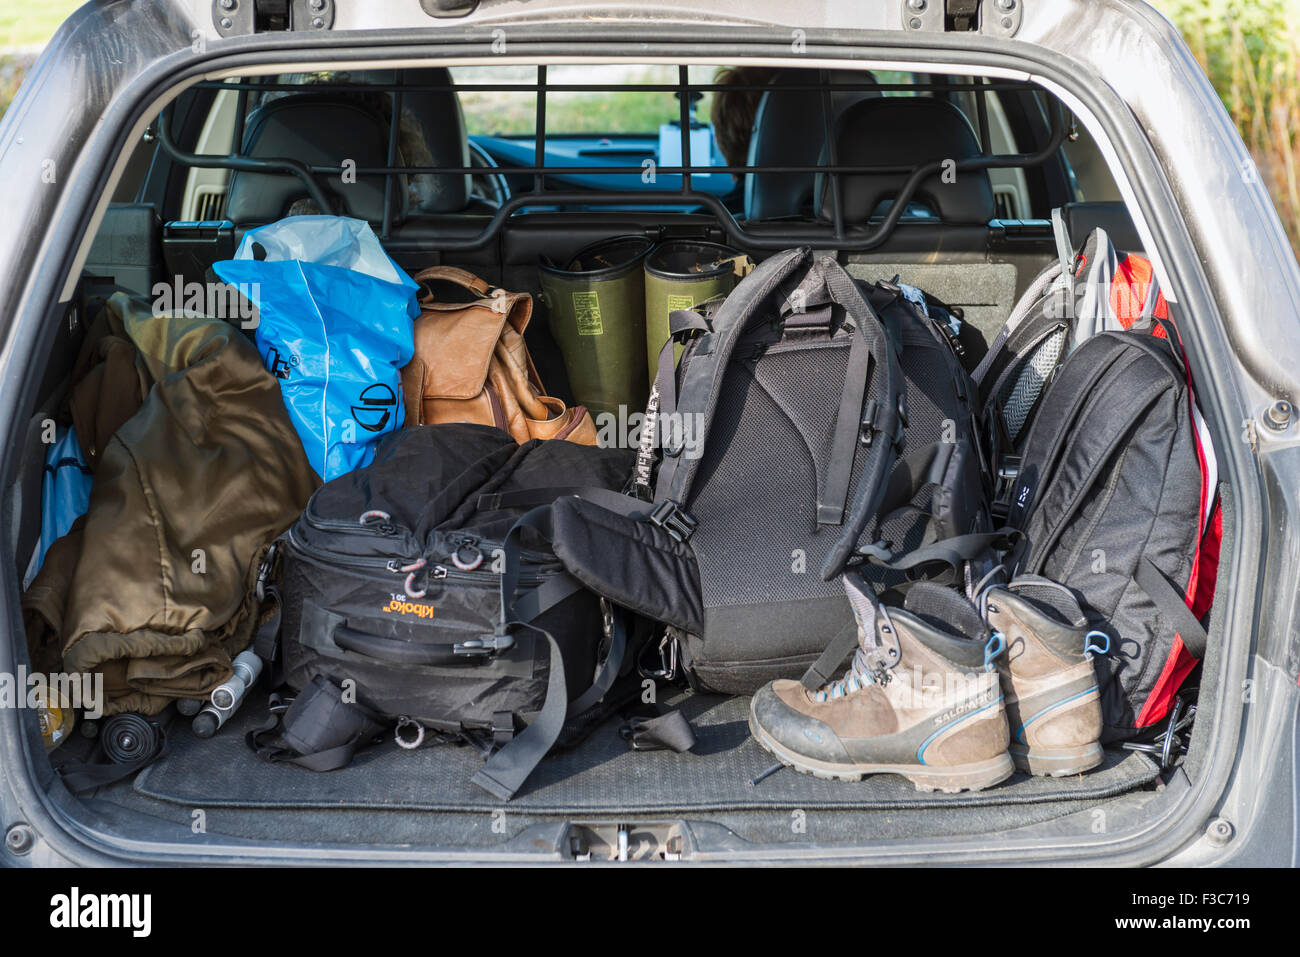 Luggage in car - Stock Image